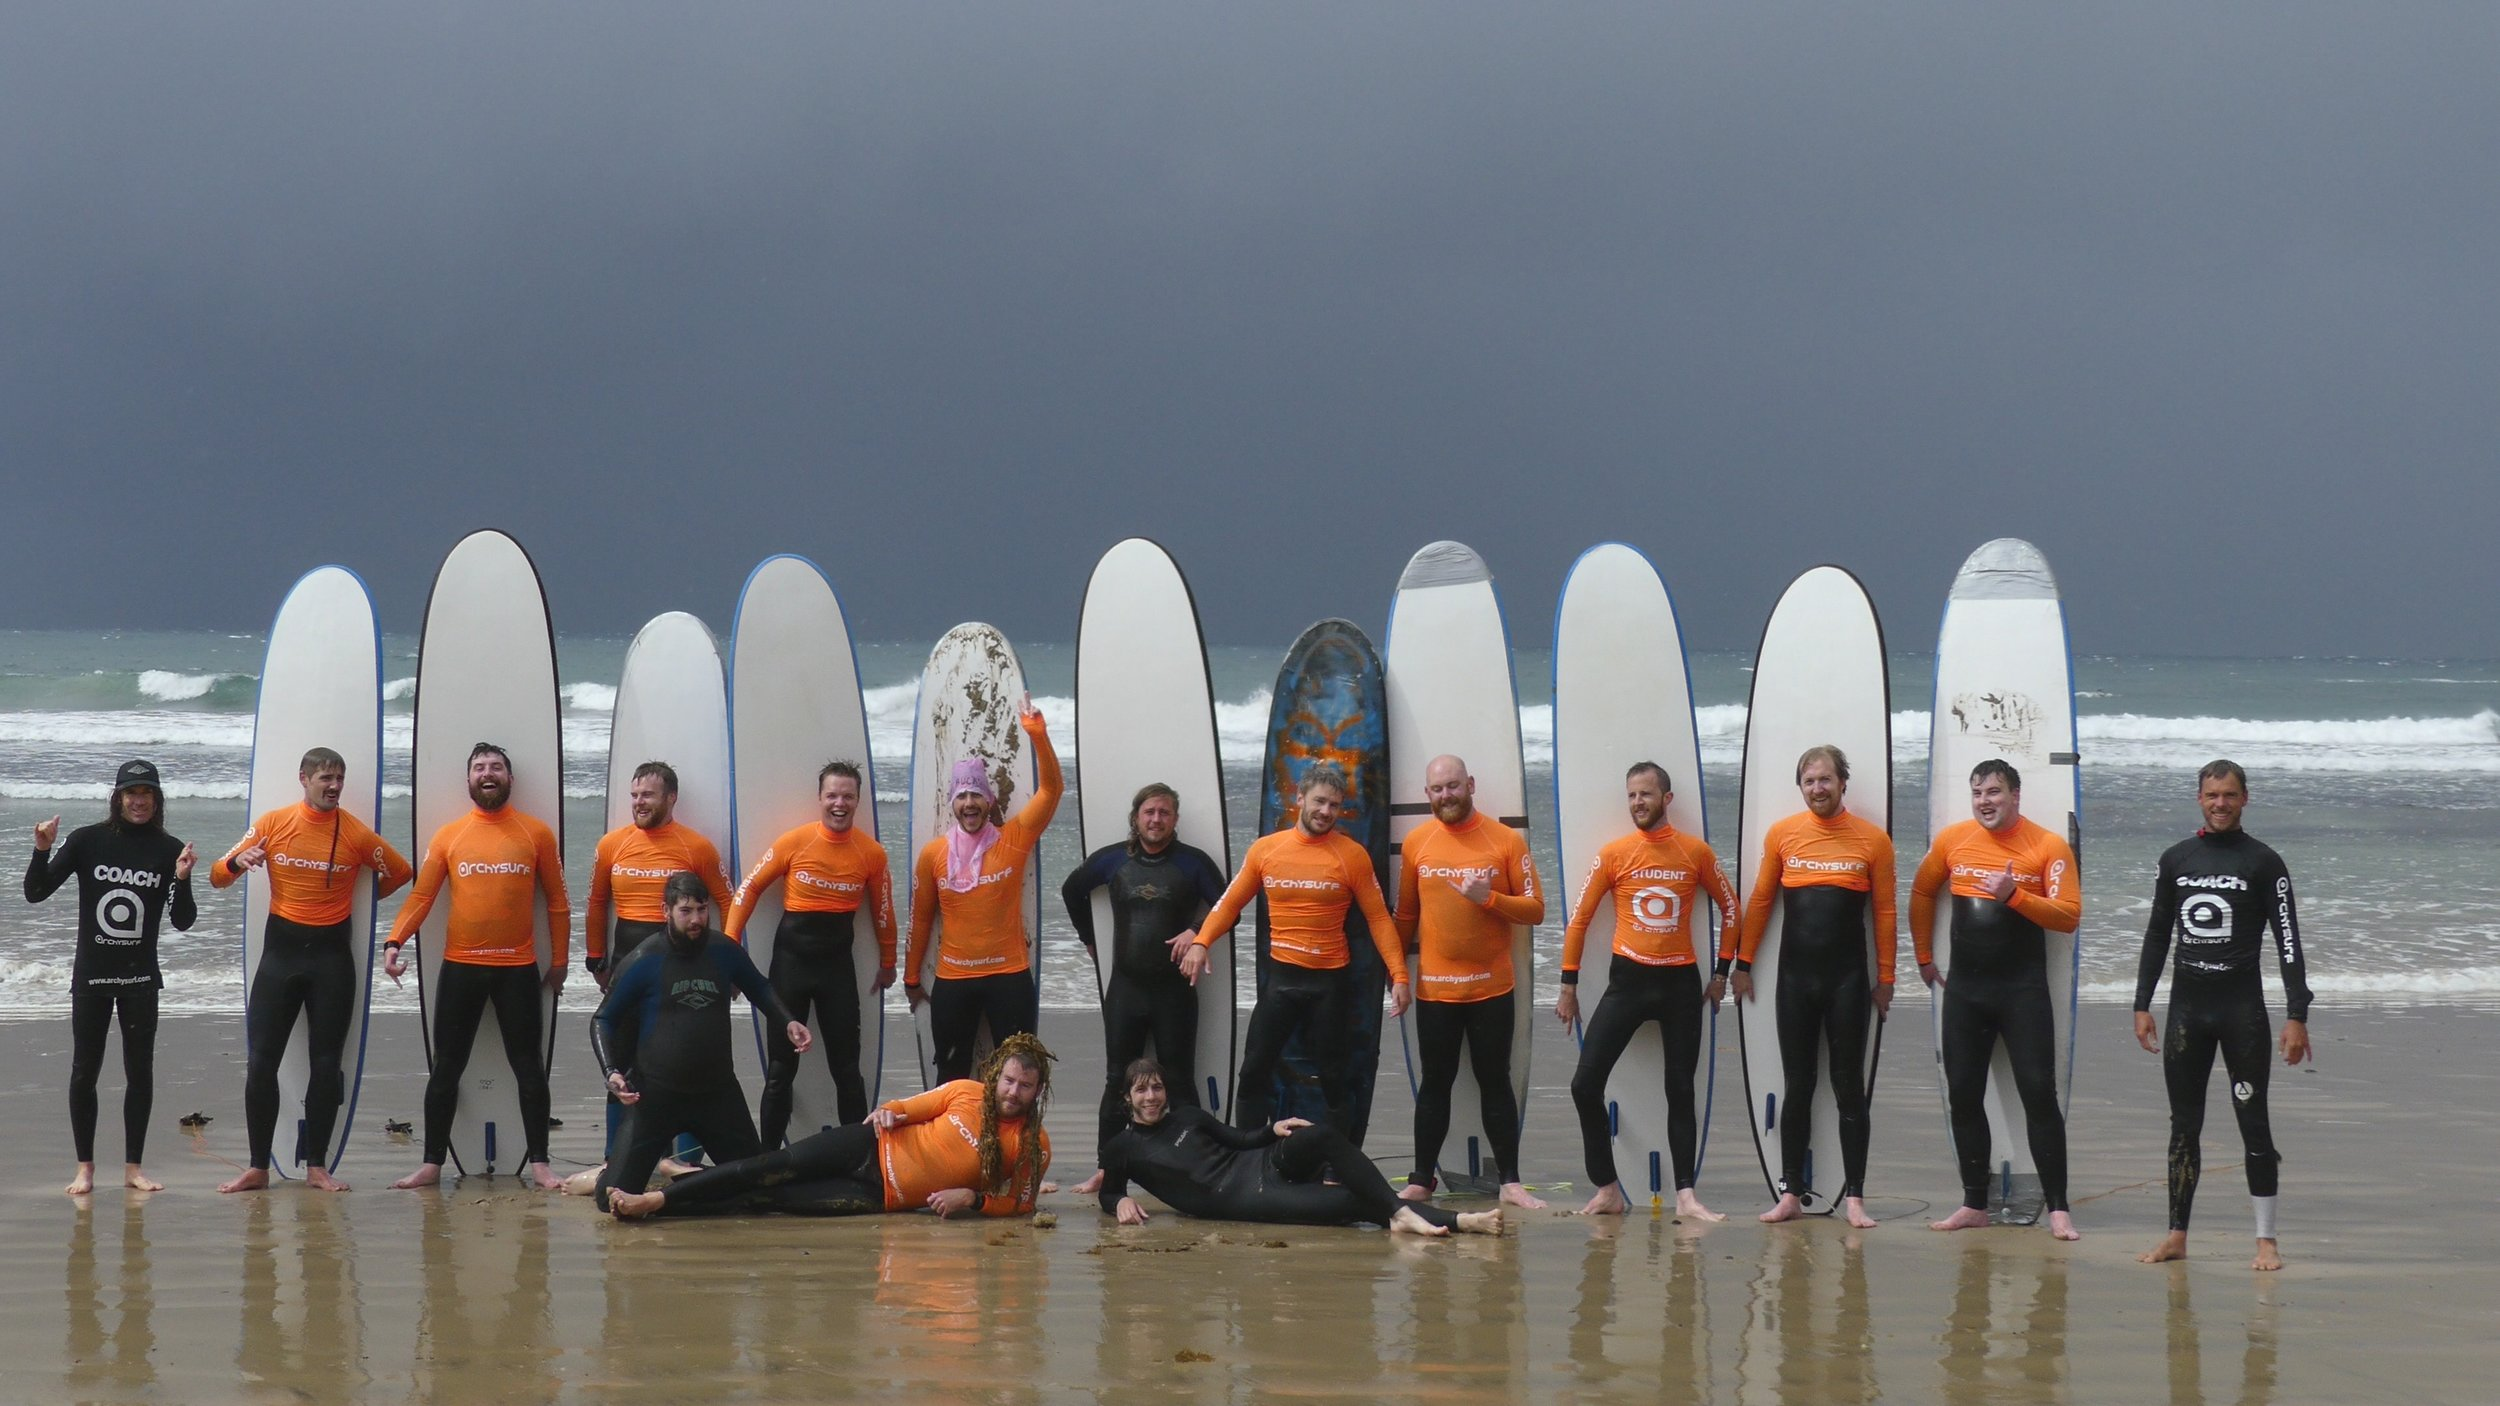 GROUP SURFING LESSONS  - ALL EQUIPMENT & COACHING PROVIDED, ACCOMODATION AVAILABLE, BEGINNER /INTER / ADVANCED, ALL TYPES AND OCCASIONS, ALL LEVELS  PUBLIC DAILY SESSIONS  OR BY BOOKING, LEARN TO SURF THE BEST WAY WITH THE RIGHT SURF COACHING, LEARN THE  CORRECT BASICS IN JUST 1 SURFING LESSON , STAND UP; LEARN HOW TO SURF WITH CORRECT TECHNIQUE, LEARN THE EASY SIMPLE WAY TO STAY SAFE AND ENJOY THE SURF,  ARCHYSURF IS THE LEGIT BEST POSSIBLE SURFING EXPERIENCE WITH PROVEN TRACK RECORD OF STOKED SURFERS AT ALL LEVELS